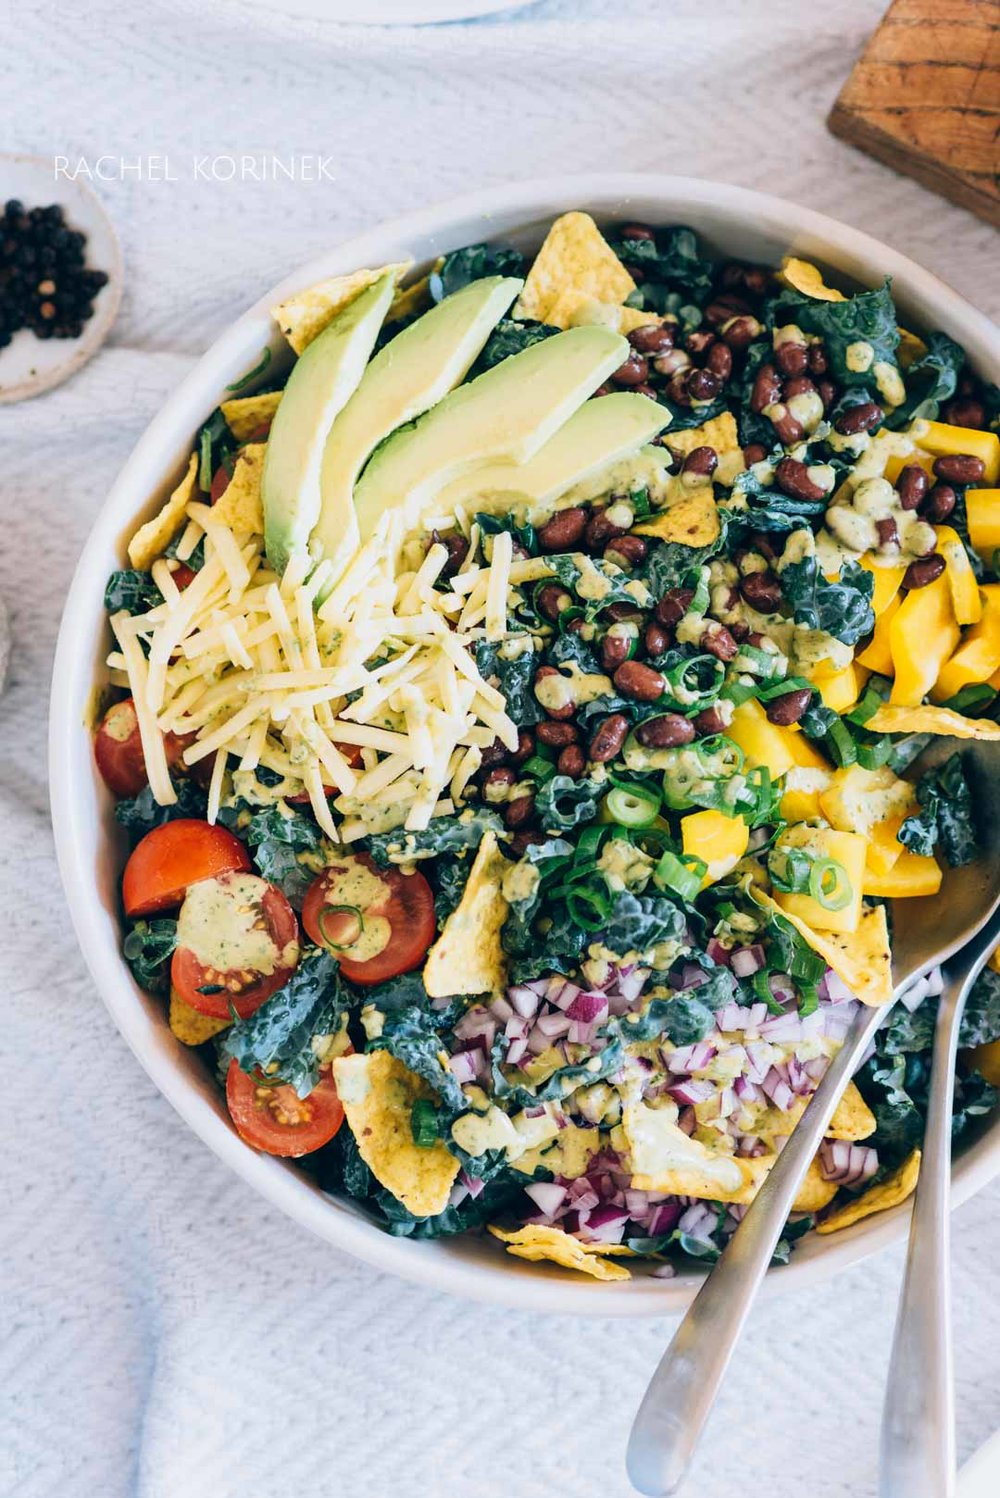 Rachel Korinek Food Photographer Winter Picnic for The Kitchen  Click to check out my latest food photography projects.  #twolovesstudio #beautifulcuisine #foodbloggerpro #foodphotography #learnfoodphotography #foodblogger #learnphotography #foodstyling #lightingtips #naturallight #foodphotographer